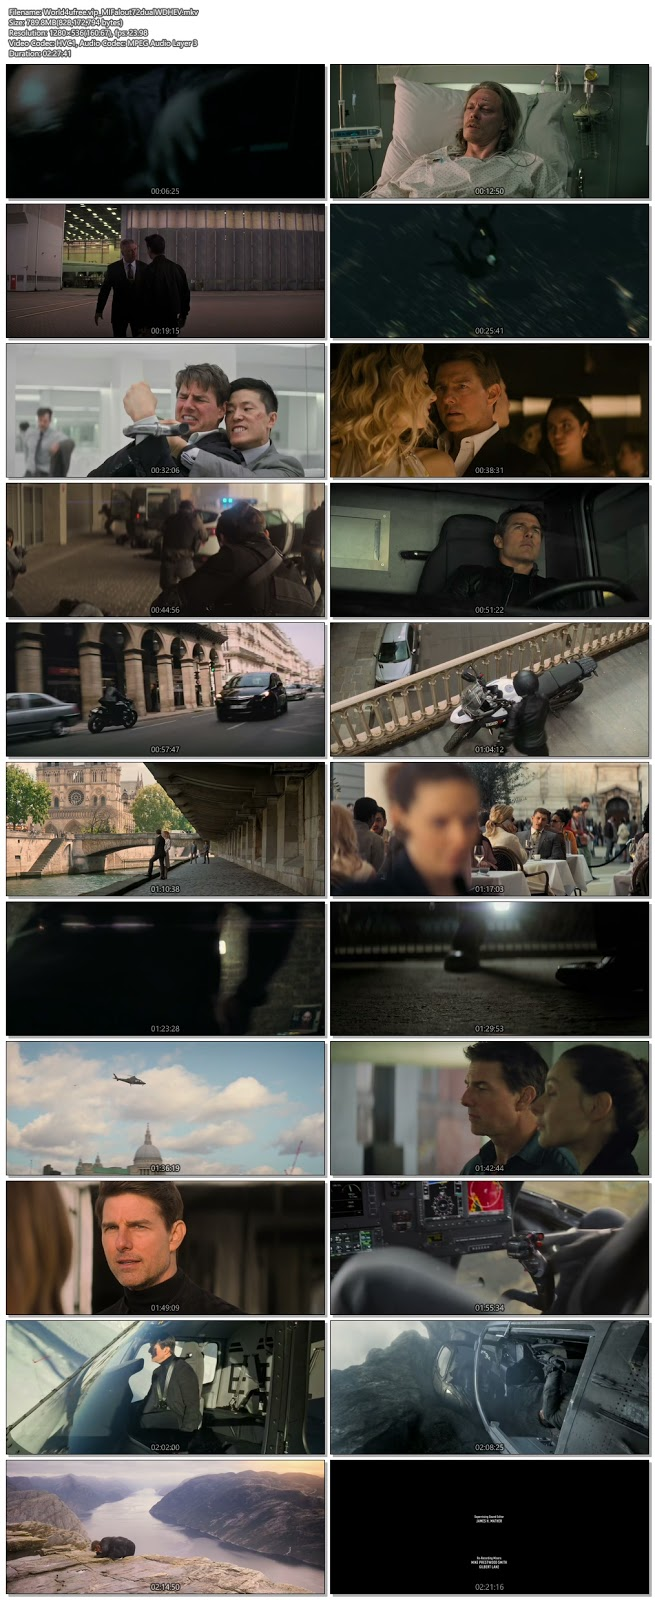 Mission Impossible Fallout 2018 Dual Audio 720p HDRip 750Mb HEVC world4ufree.fun , South indian movie Mission Impossible Fallout 2018 hindi dubbed world4ufree.fun 720p hdrip webrip dvdrip 700mb brrip bluray free download or watch online at world4ufree.fun